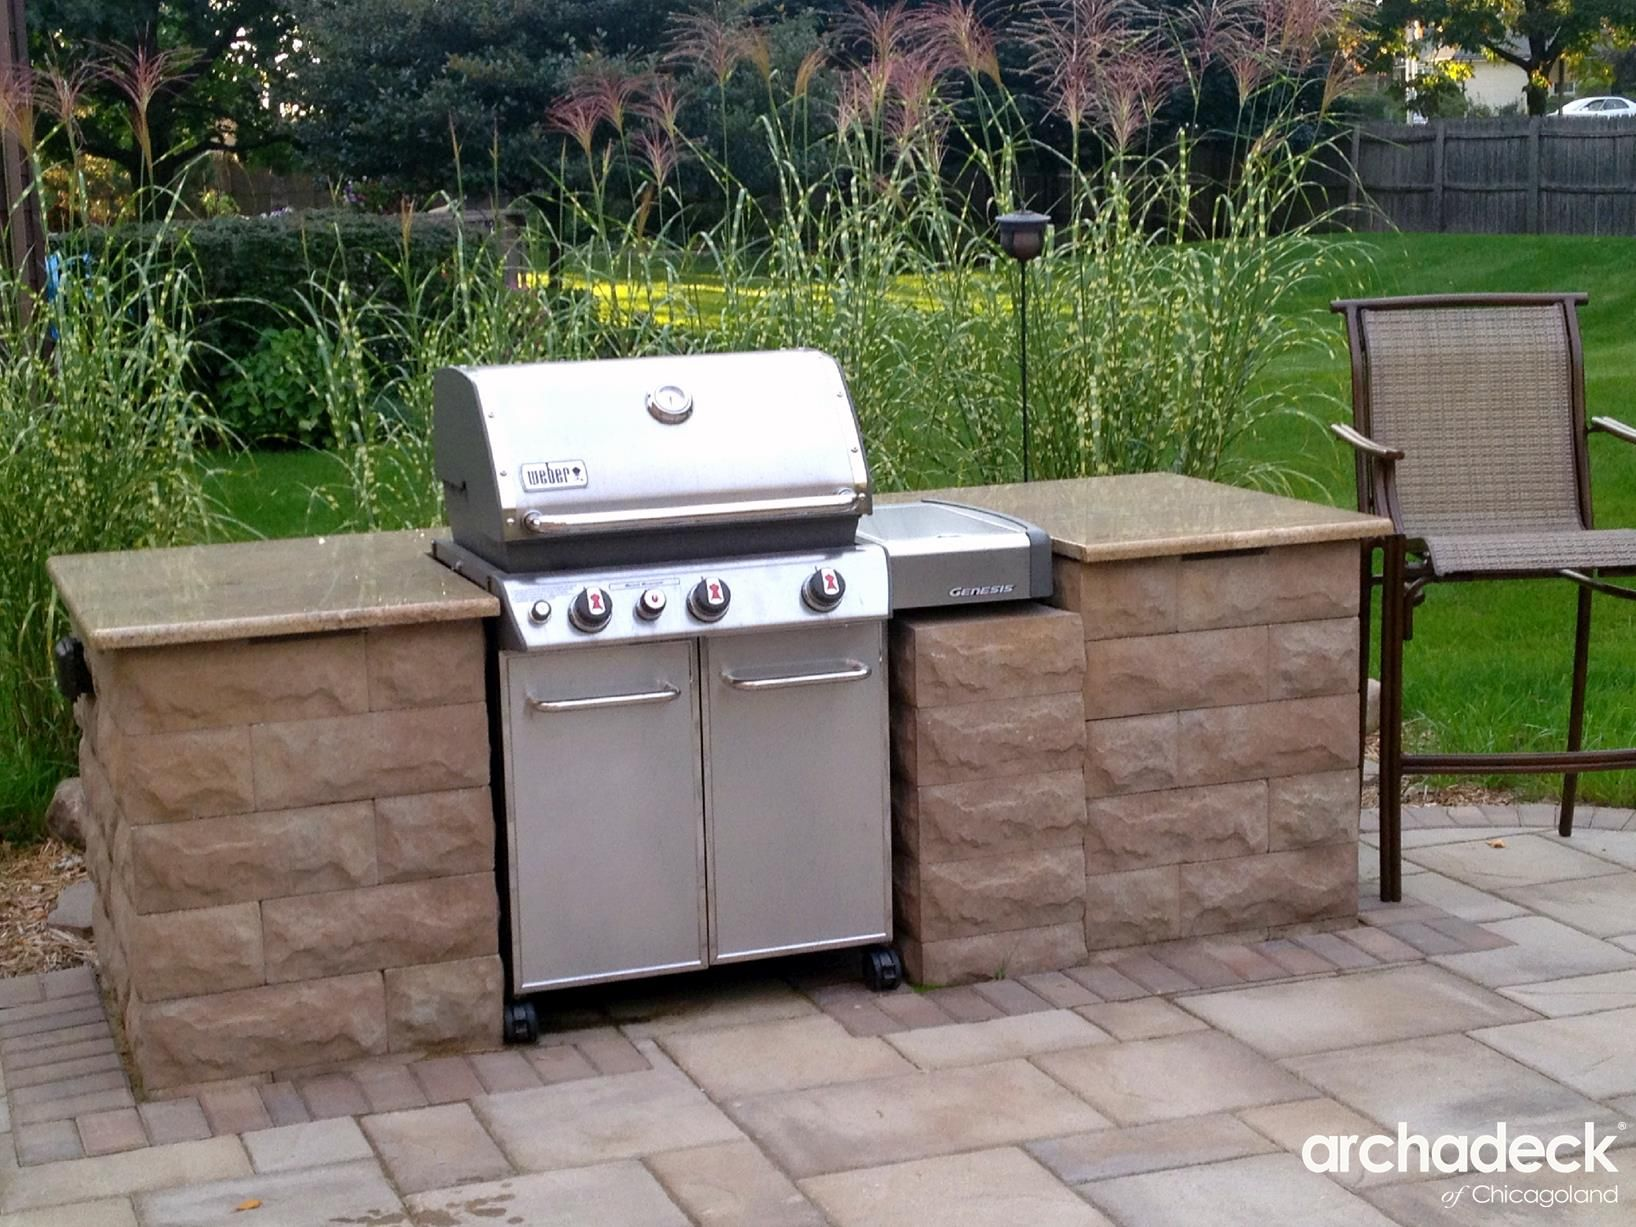 Image Result For Gas Grill Surround Patio Builders Outdoor Bbq Area Patio Fire Pit